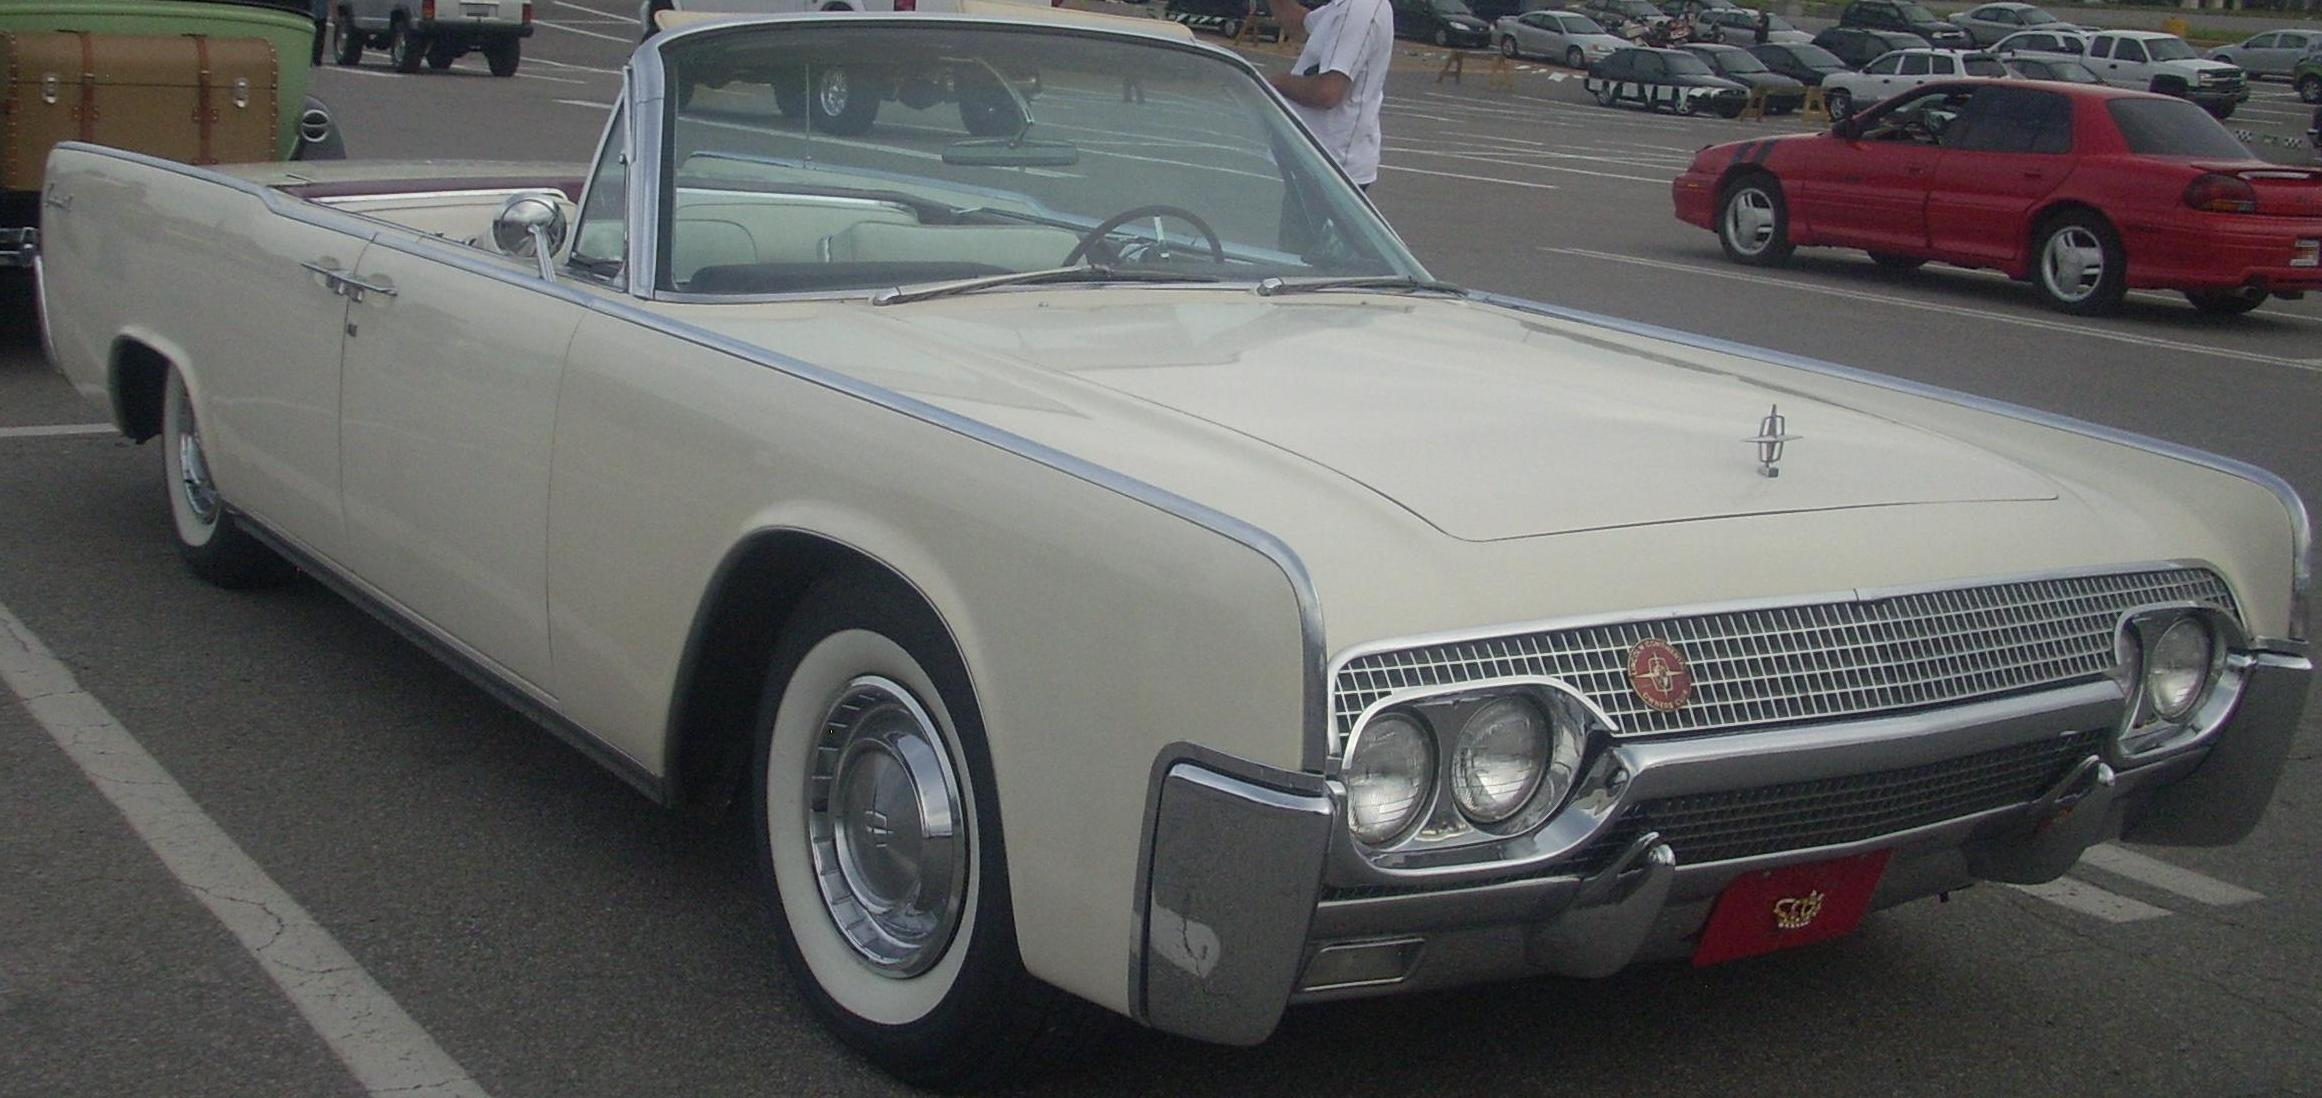 Lincoln_Continental_Convertible_(Les_chauds_vendredis_ Fascinating Lincoln Continental Used In Hit and Run Cars Trend